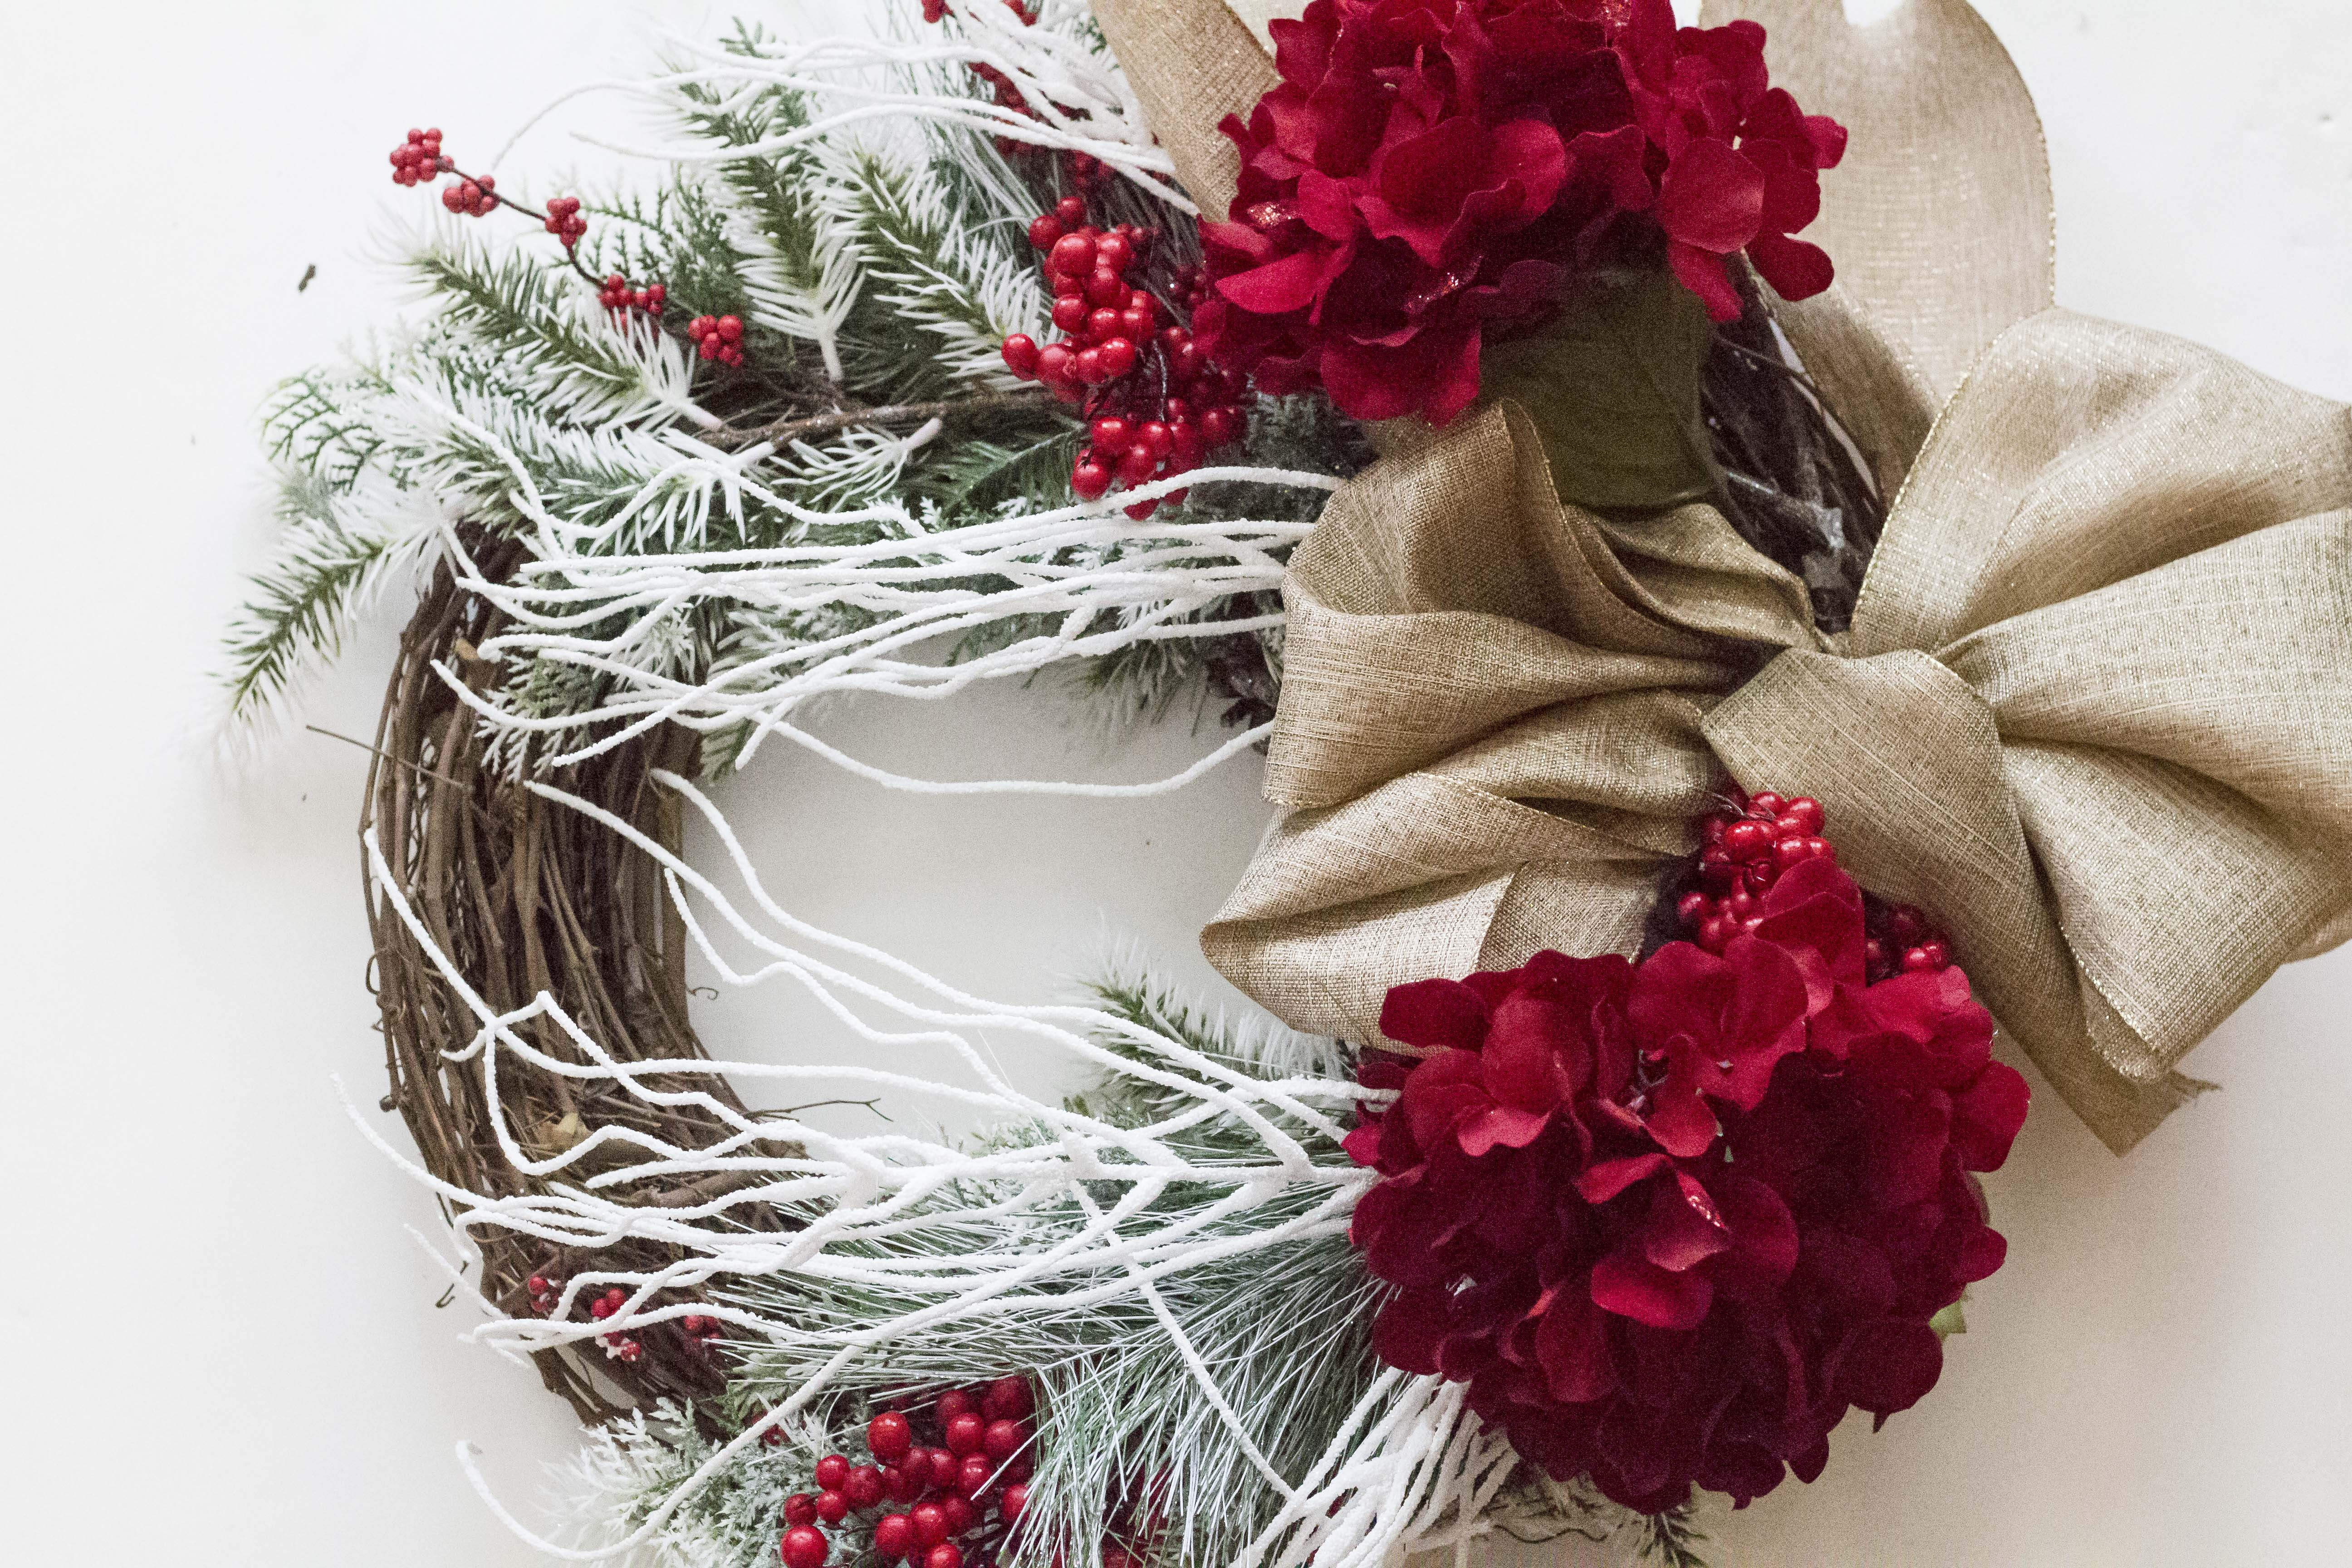 Red And White Christmas Wreath.Try This Red And White Christmas Wreath Tutorial